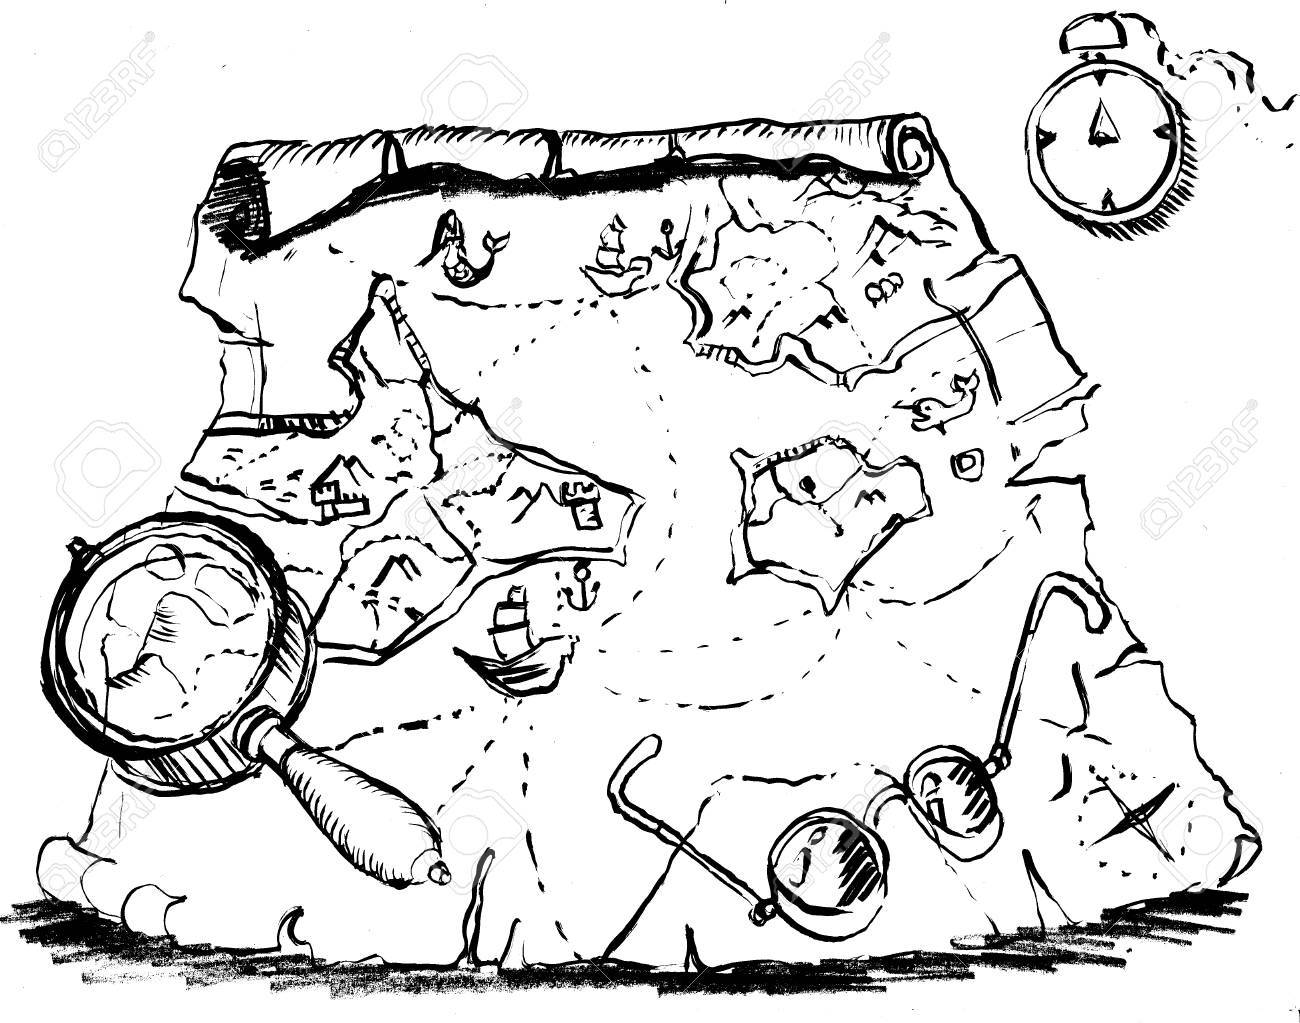 1300x1023 Old Map, Scroll, Fantasy Games, Drawing Stock Photo, Picture